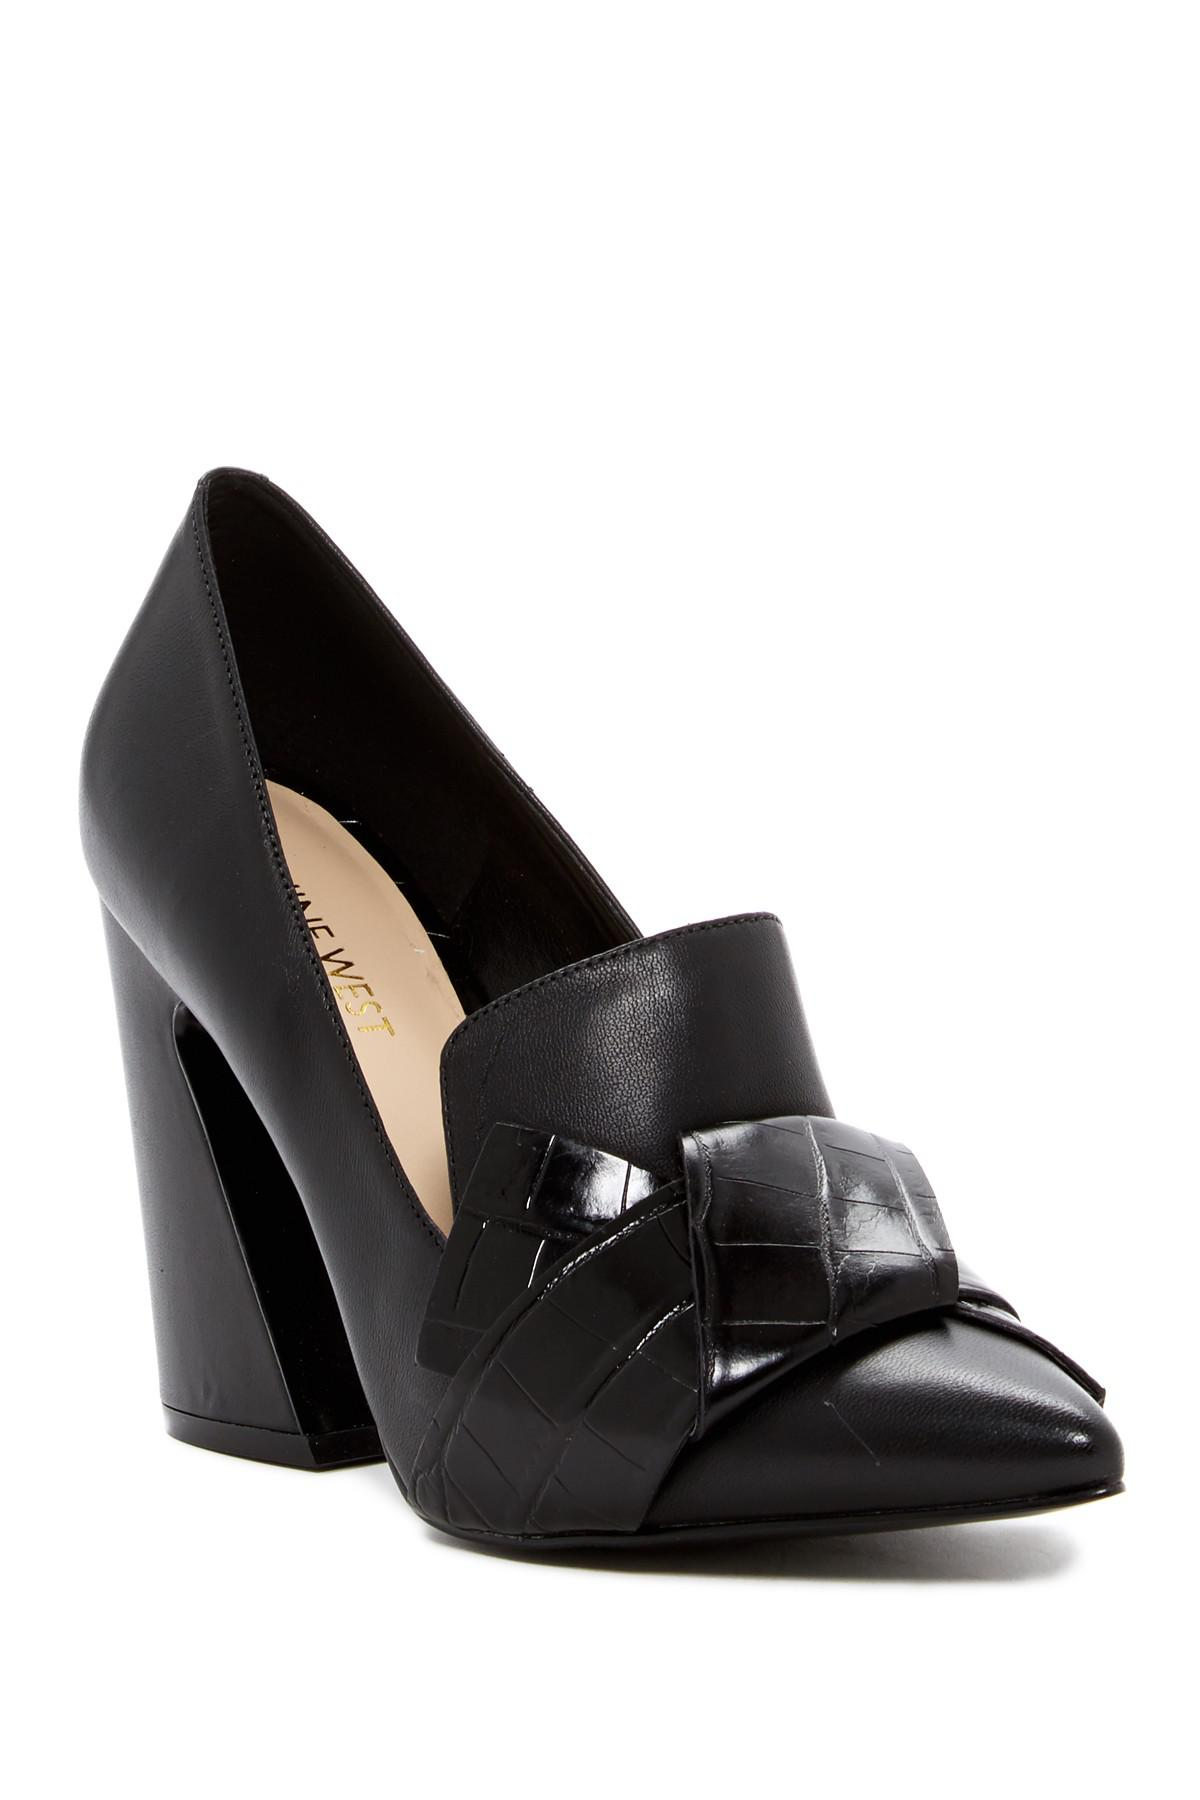 Nine West Happyhour 9M5A639D Fashion Shoes Hot Sale Cheapest Price Save Over 50%